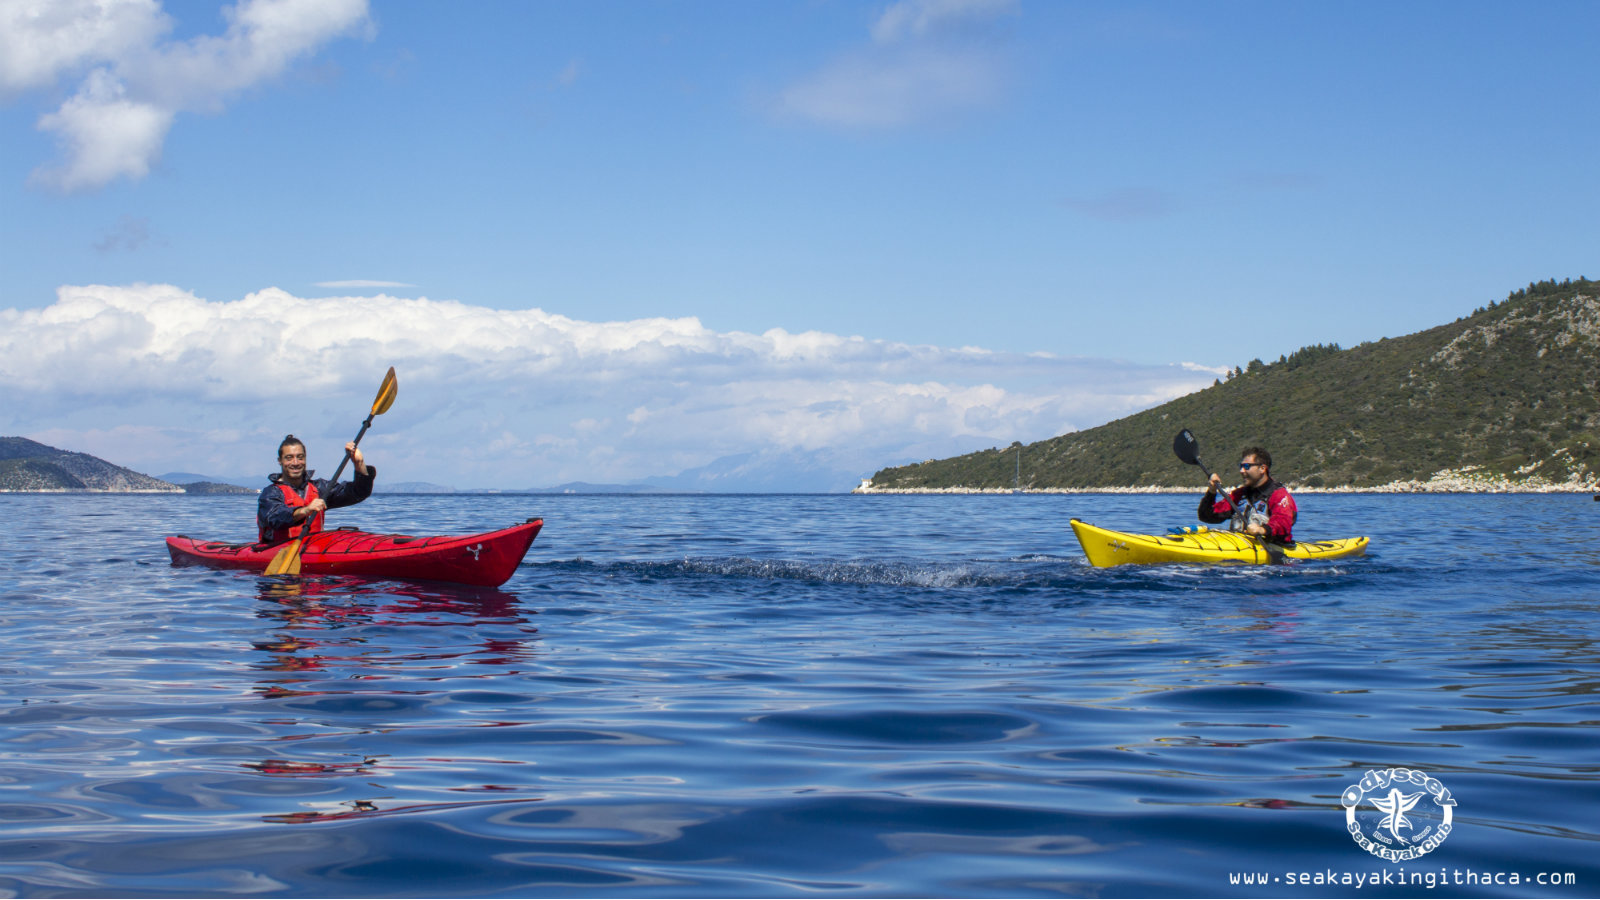 Sea_Kayaking_IMG_6953-copy.jpg?mtime=20180402123859#asset:82590